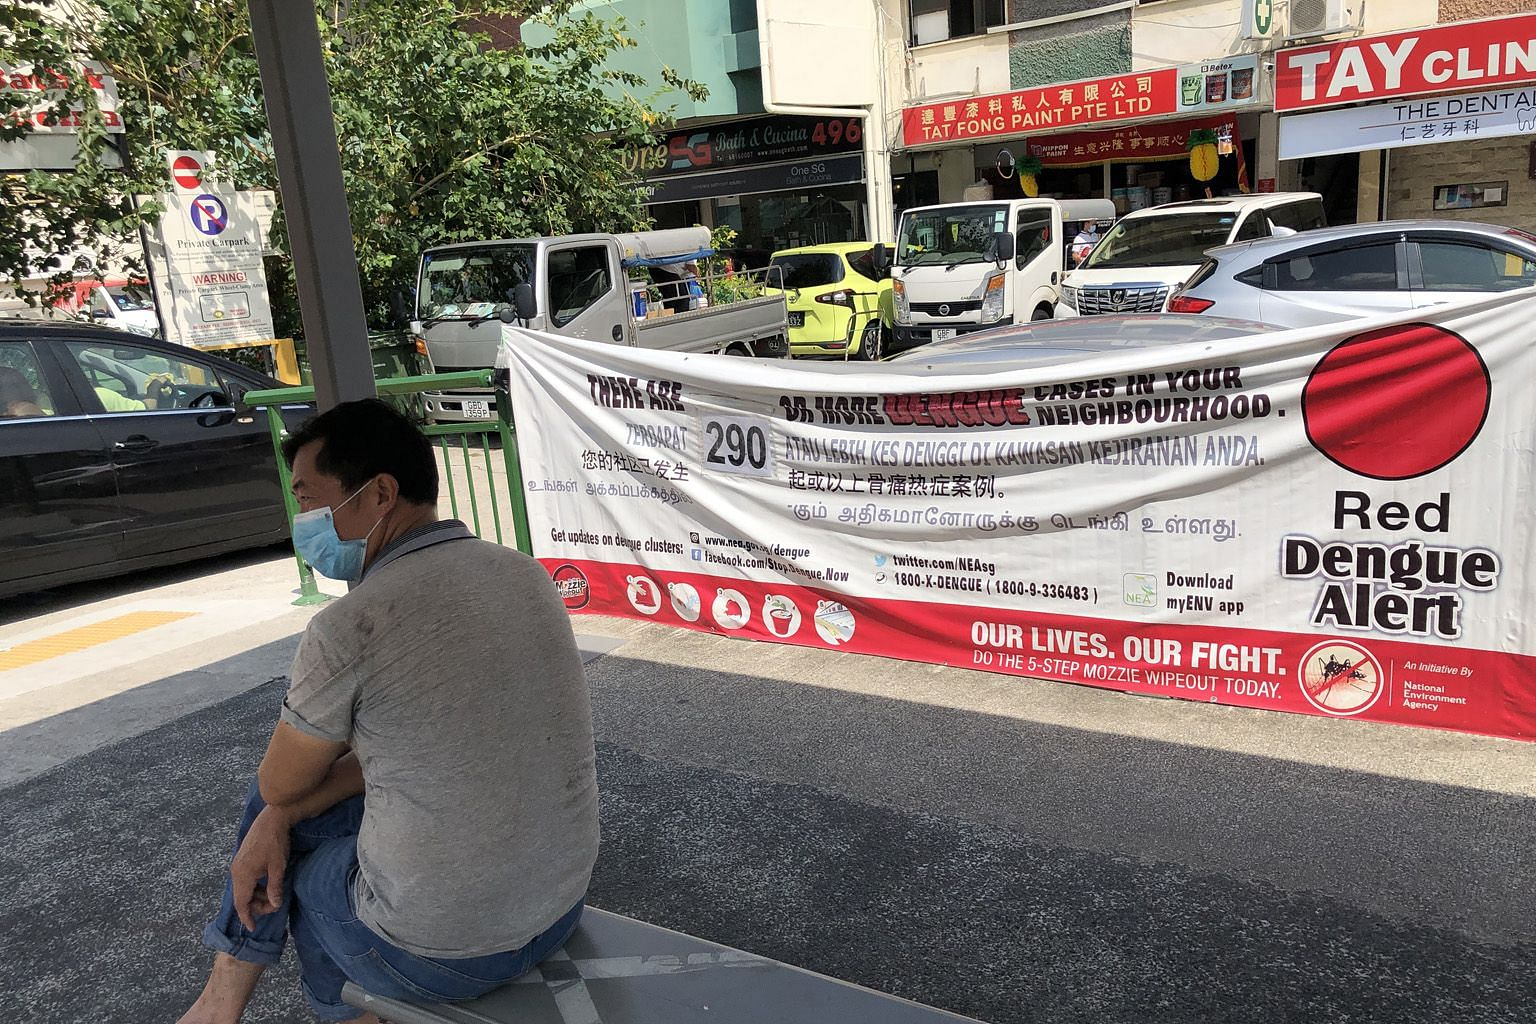 A red alert dengue banner at a bus stop in Geylang Road early last month. It is important for people with dengue to prevent themselves from being bitten again while they remain infectious. Even someone who has been bitten but has no symptoms can stil